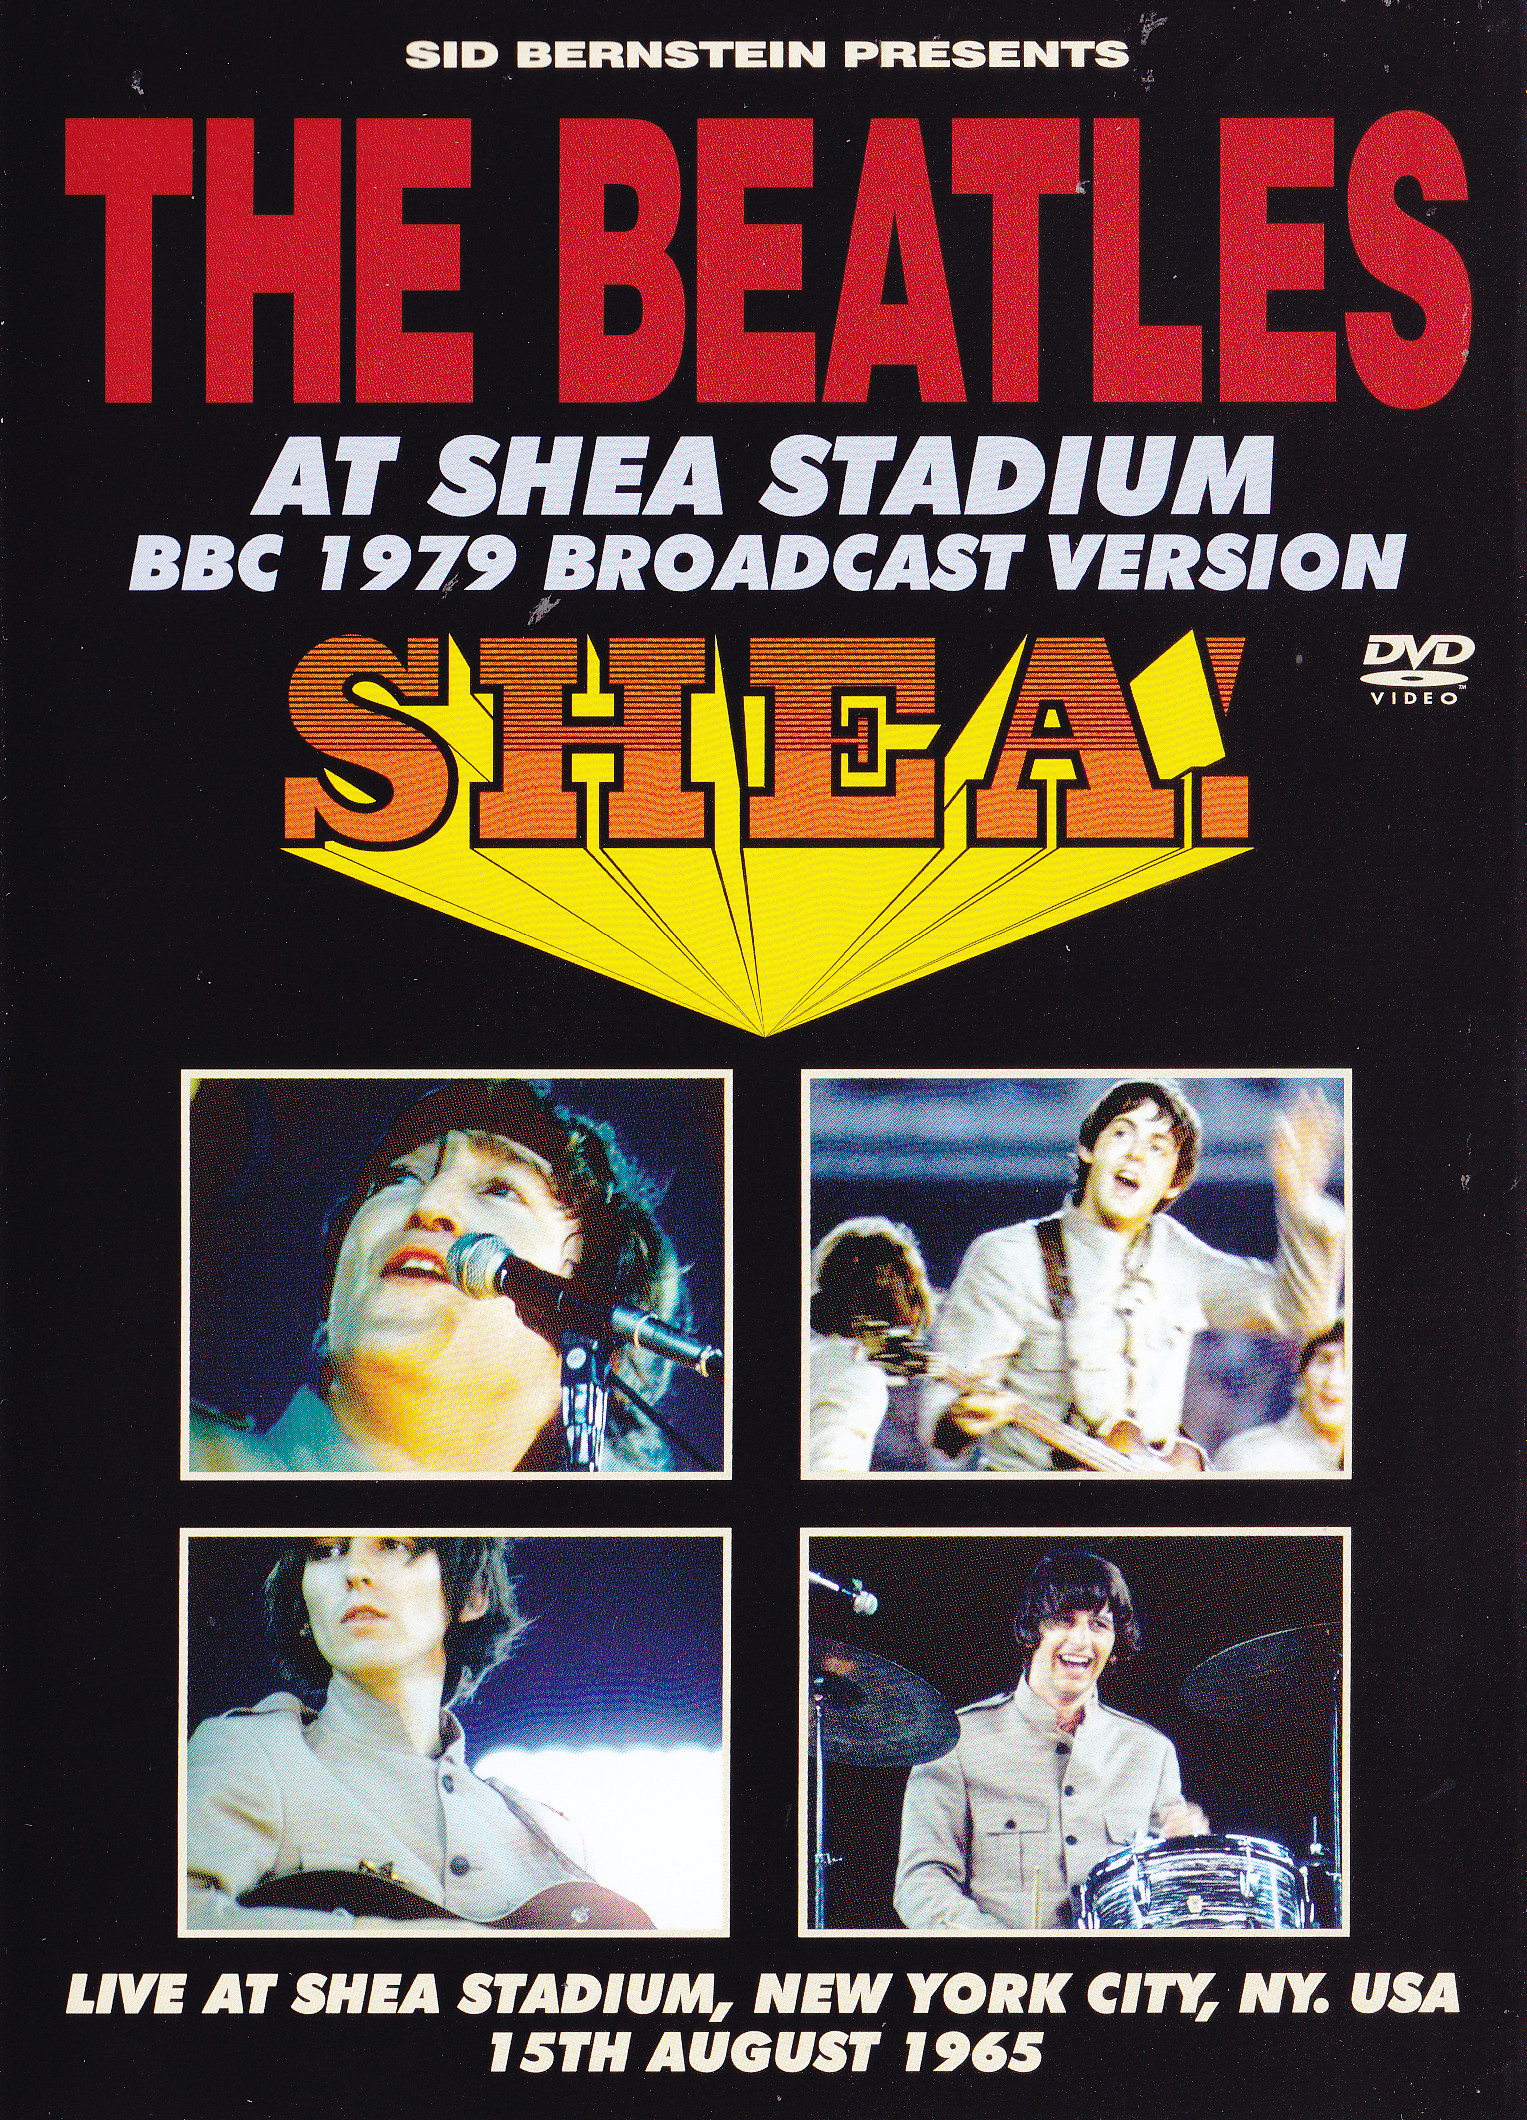 Beatles The At Shea Stadium 1979 Bbc Broadcast Version 1dvd Fab4 81565 Discjapan